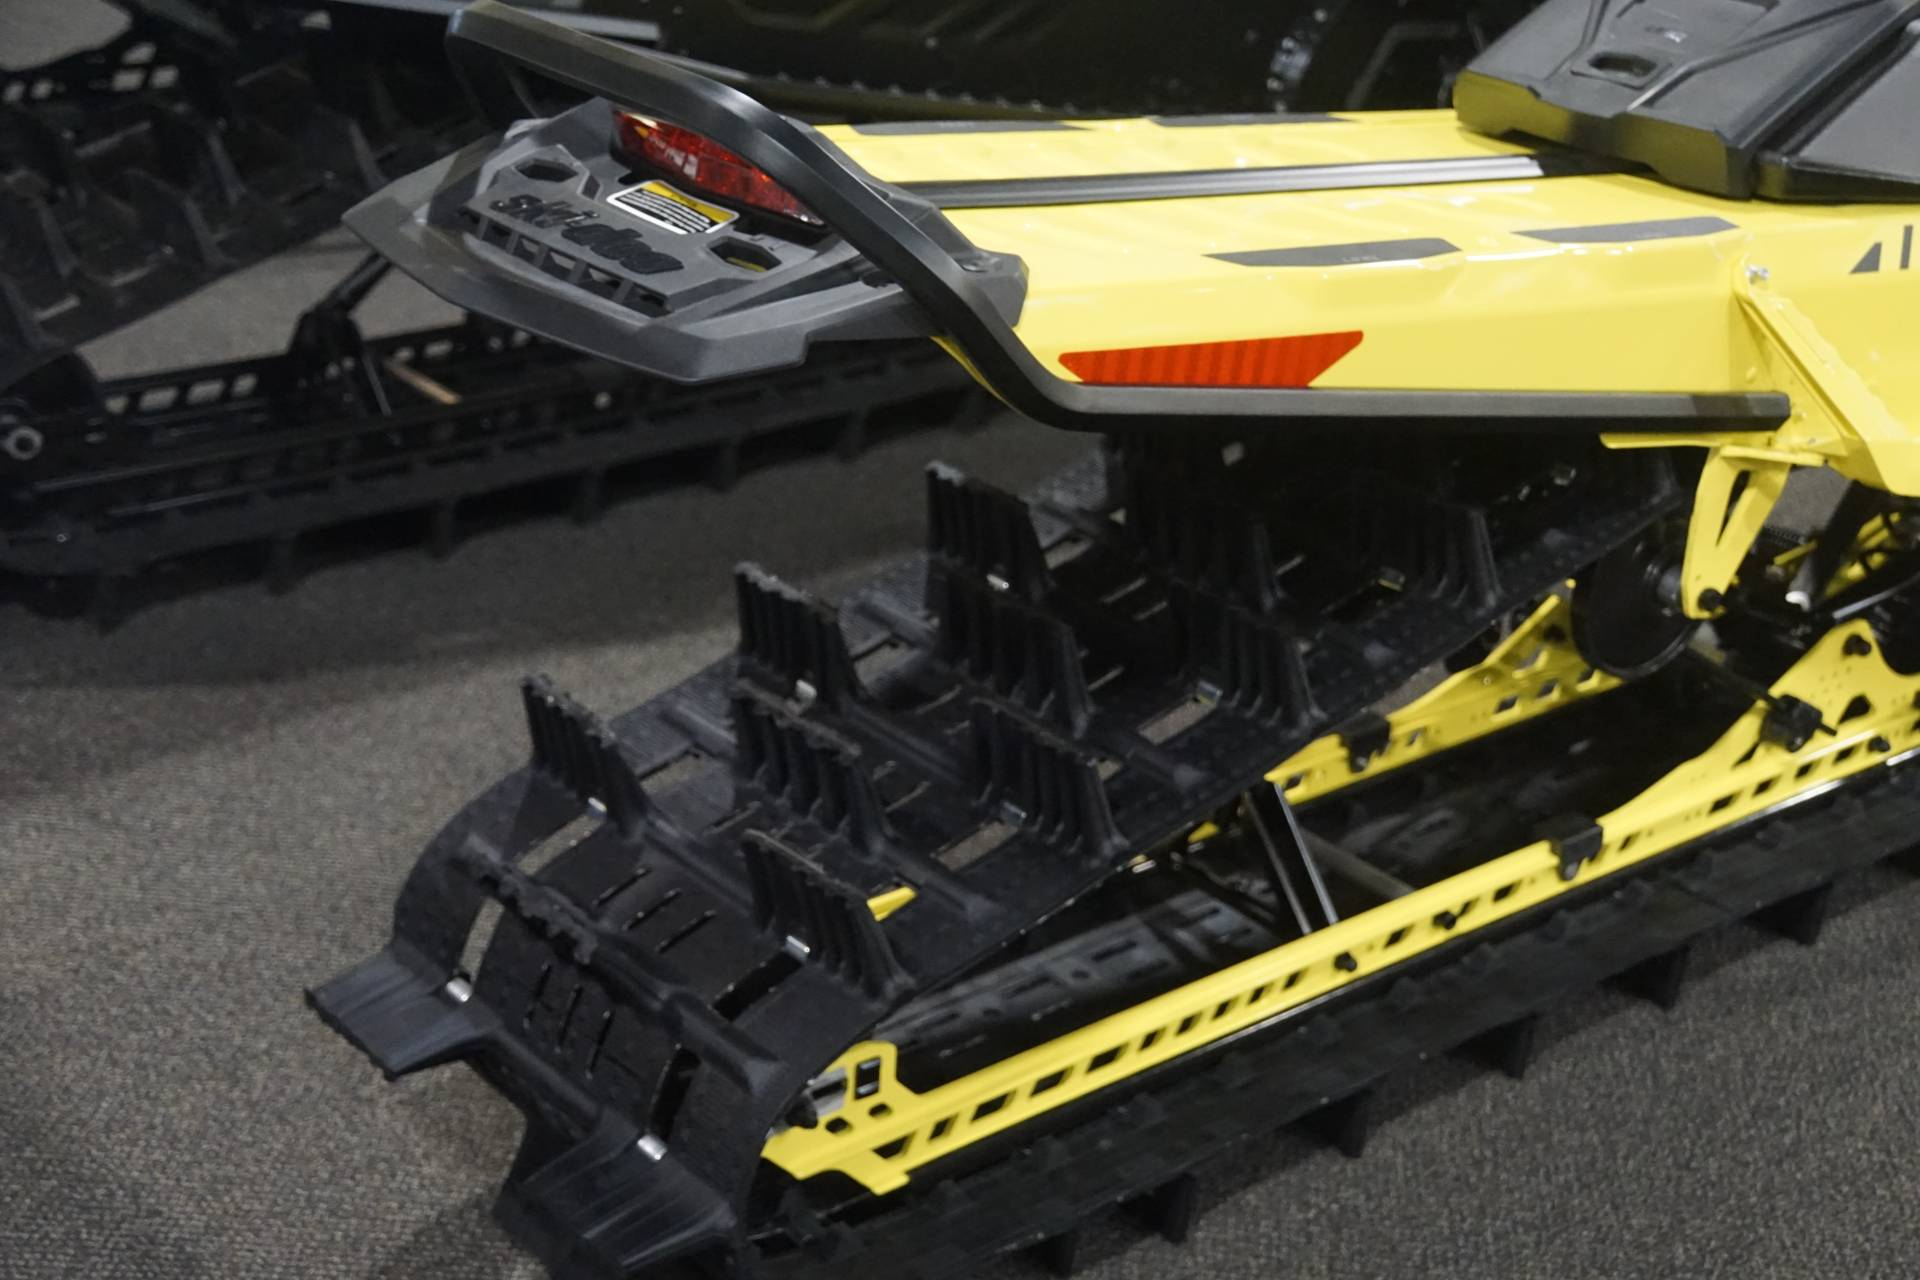 2020 Ski-Doo Summit 165 850 E-TEC Turbo SHOT in Elk Grove, California - Photo 11